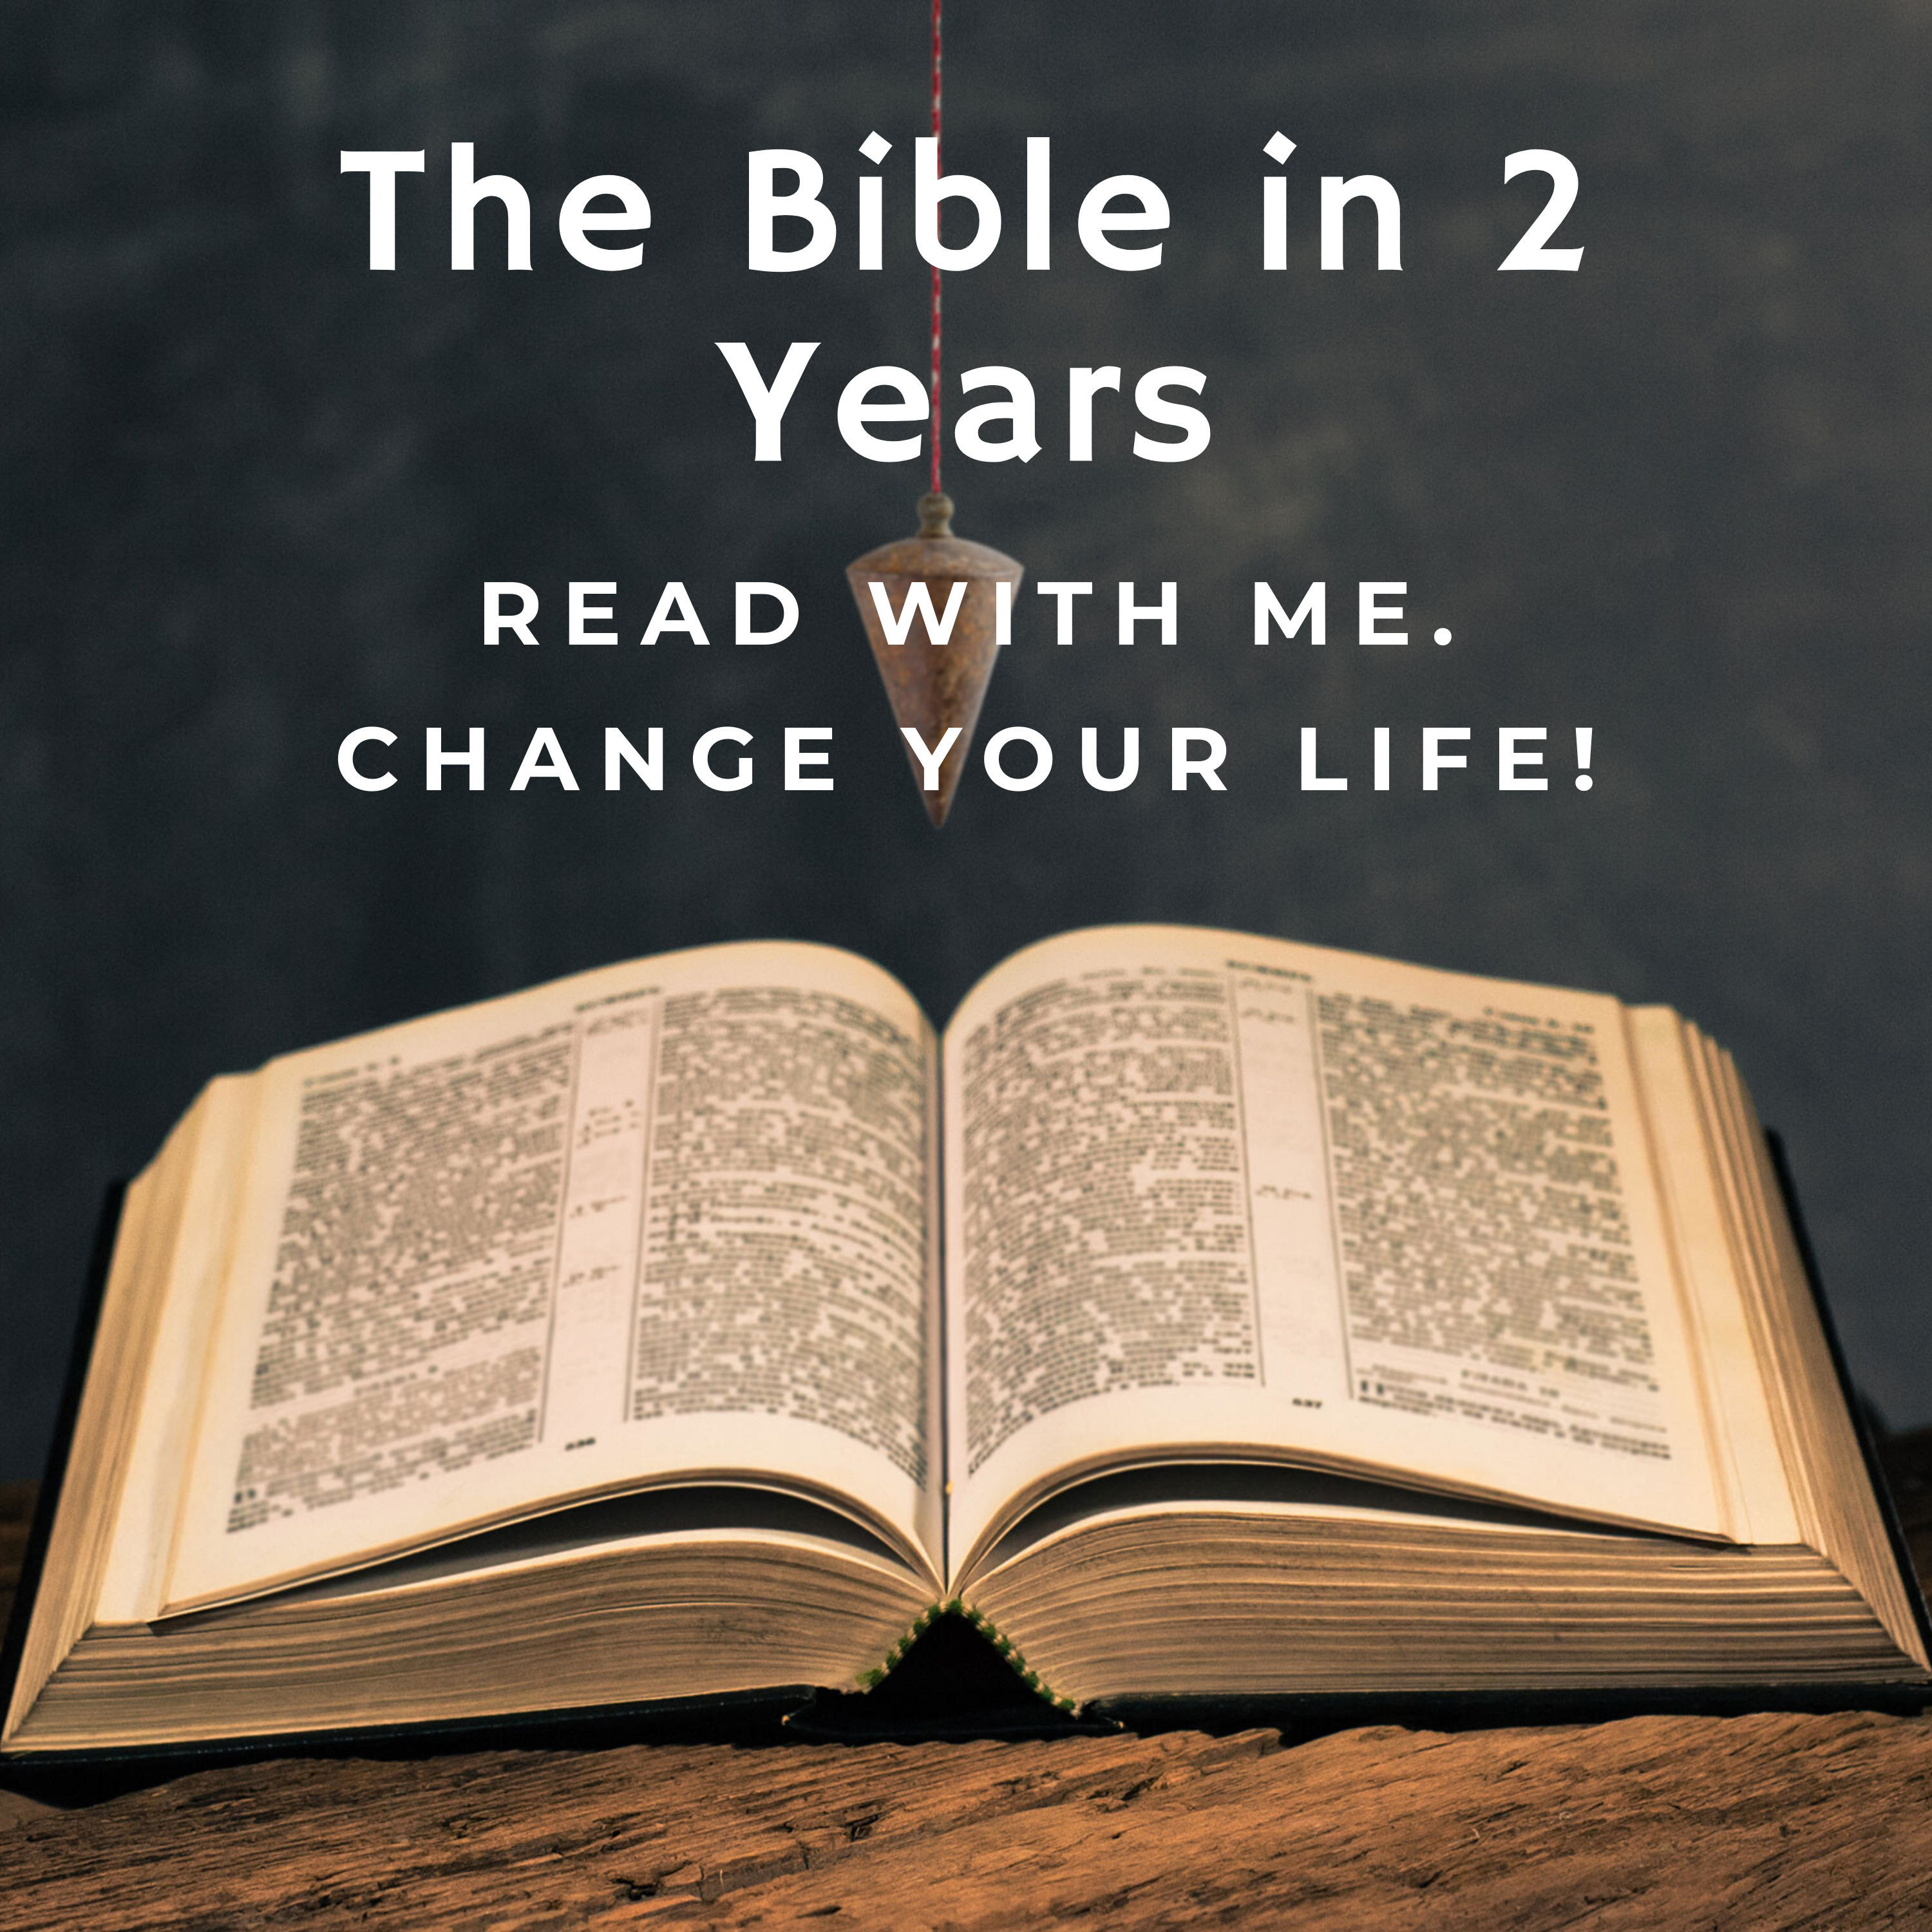 The Bible in 2 Years!